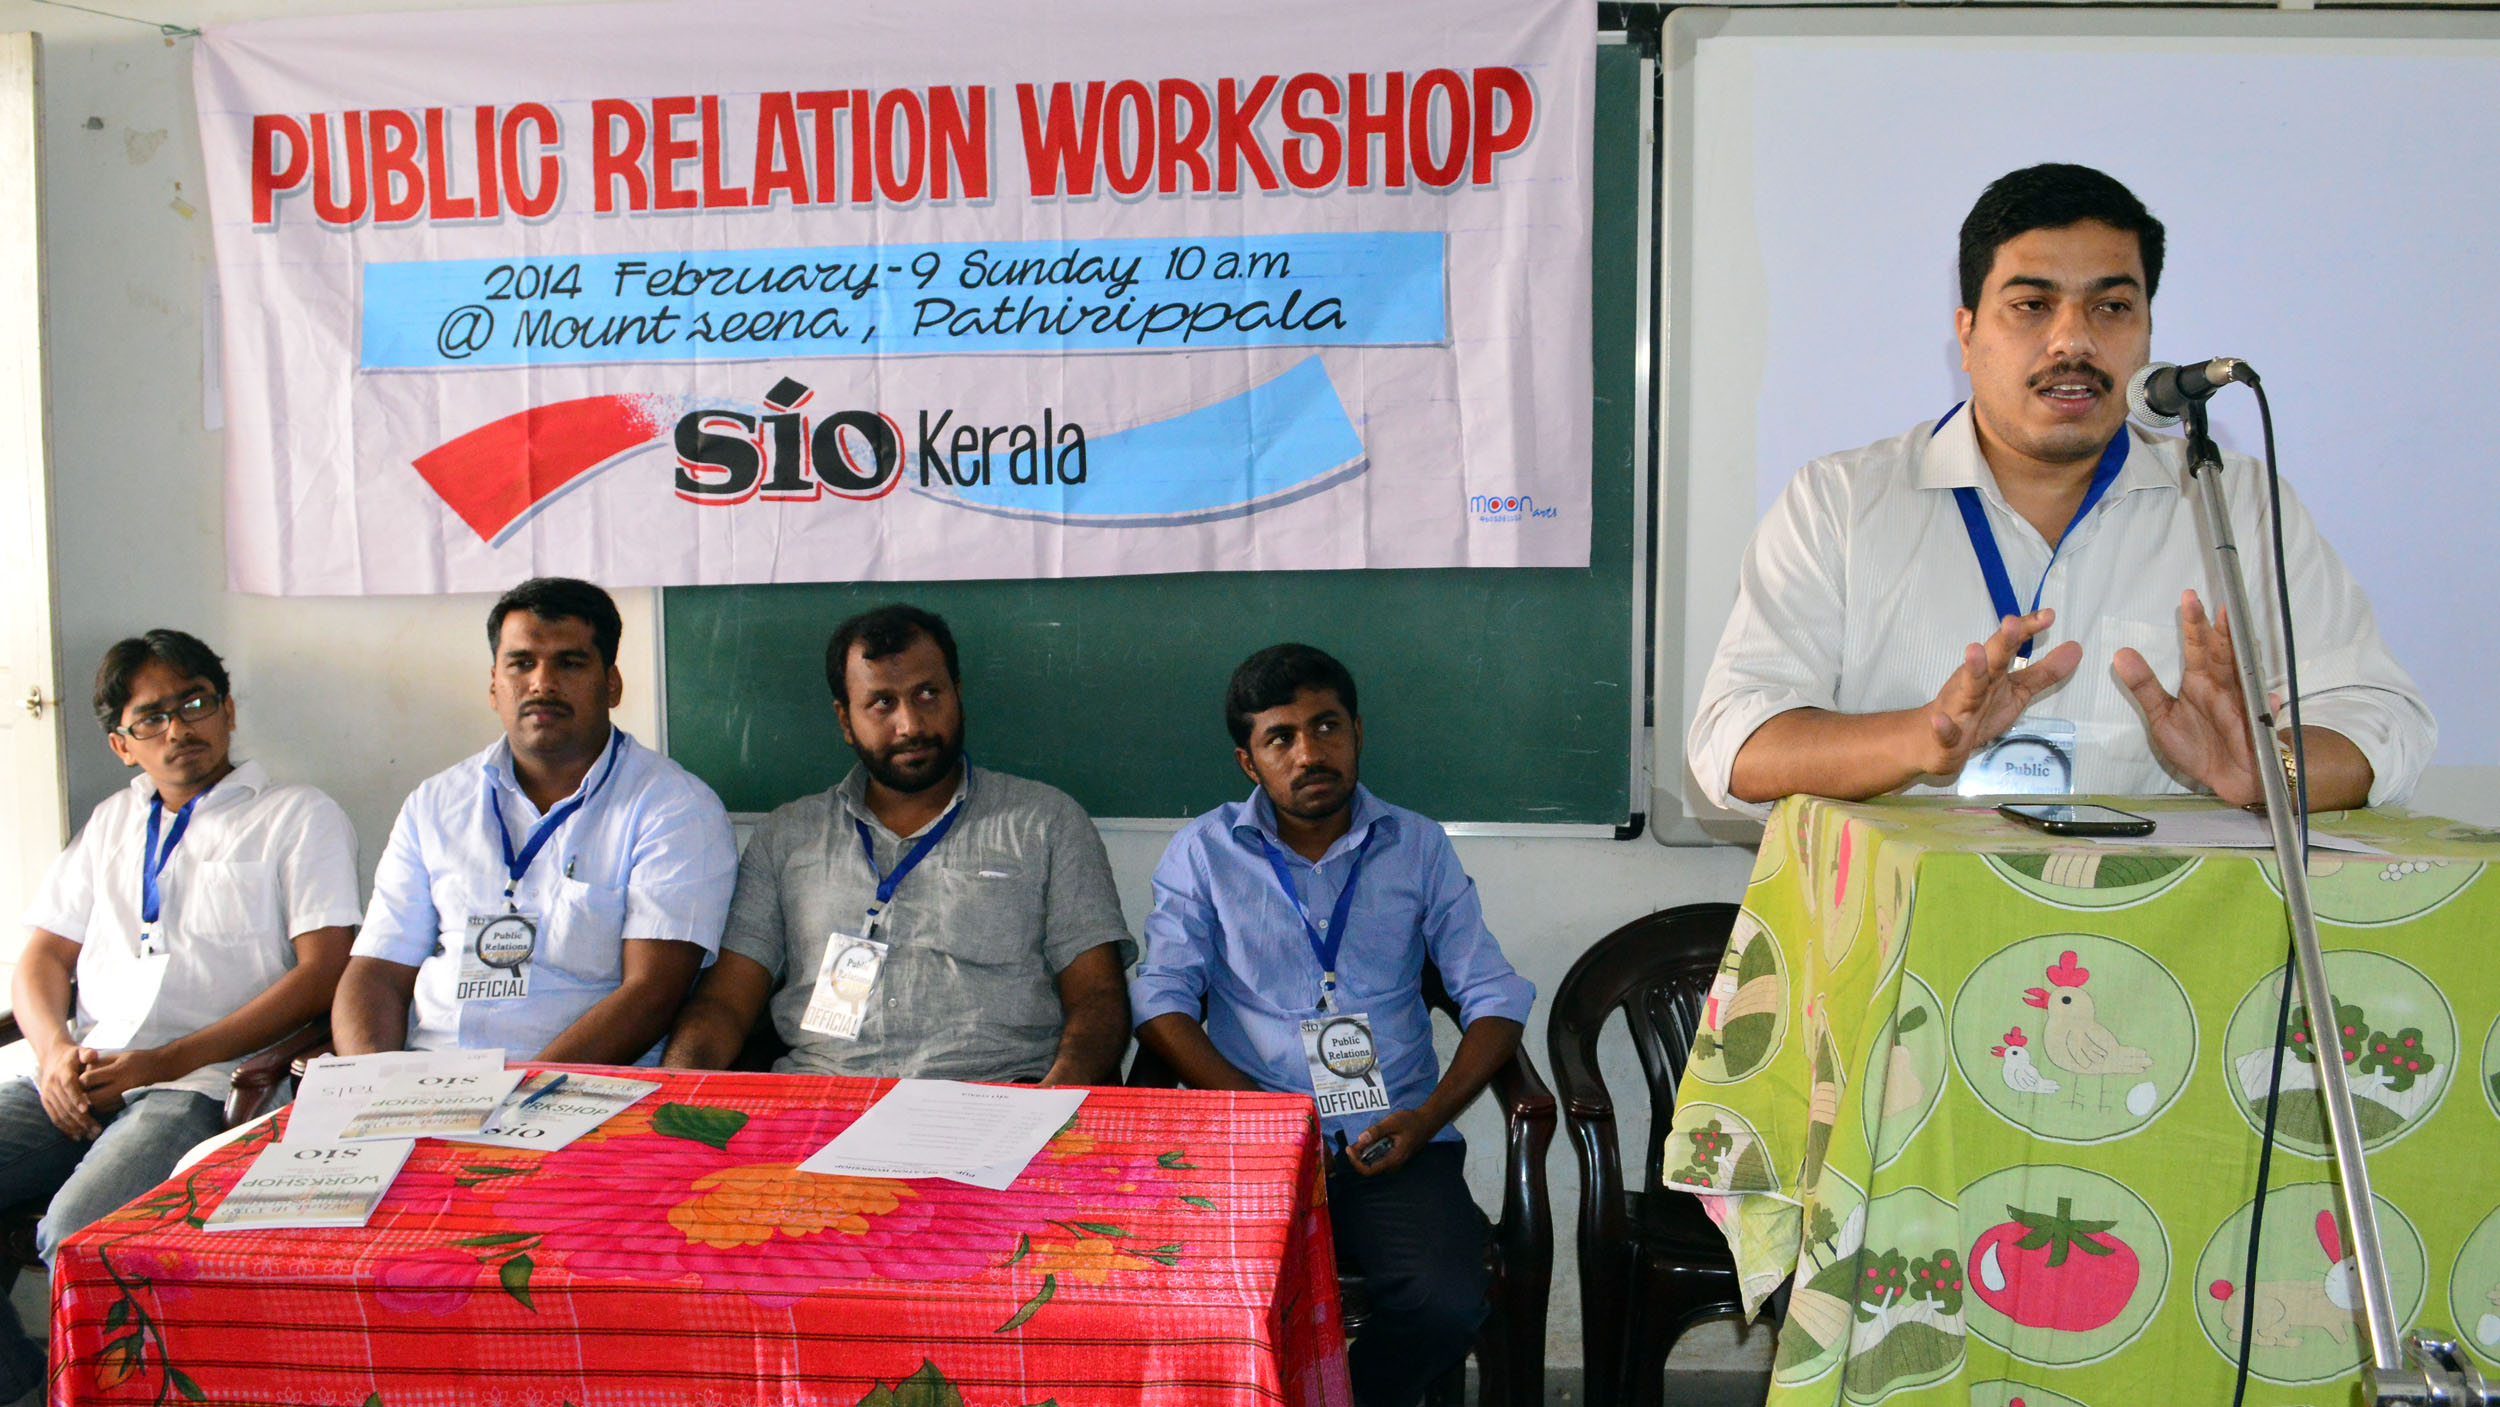 Workshop on Public relations conducted by SIO Kerala